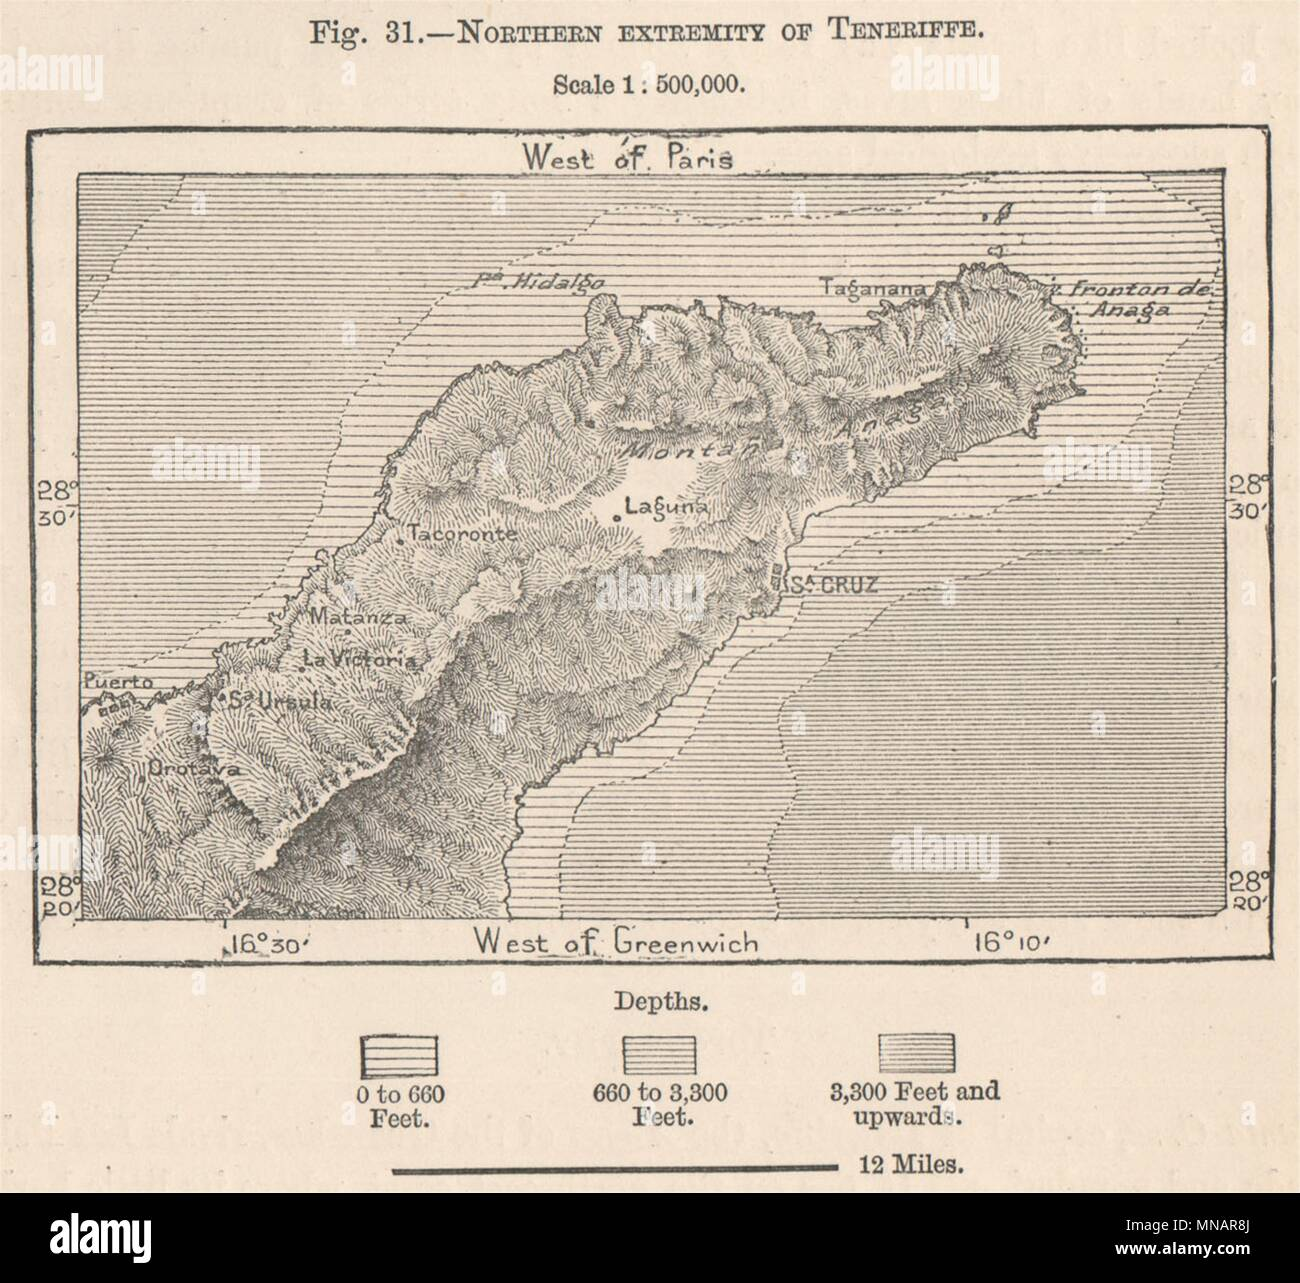 Map Of Spain Tenerife.Macizo De Anaga Tenerife Spain Canary Islands 1885 Old Antique